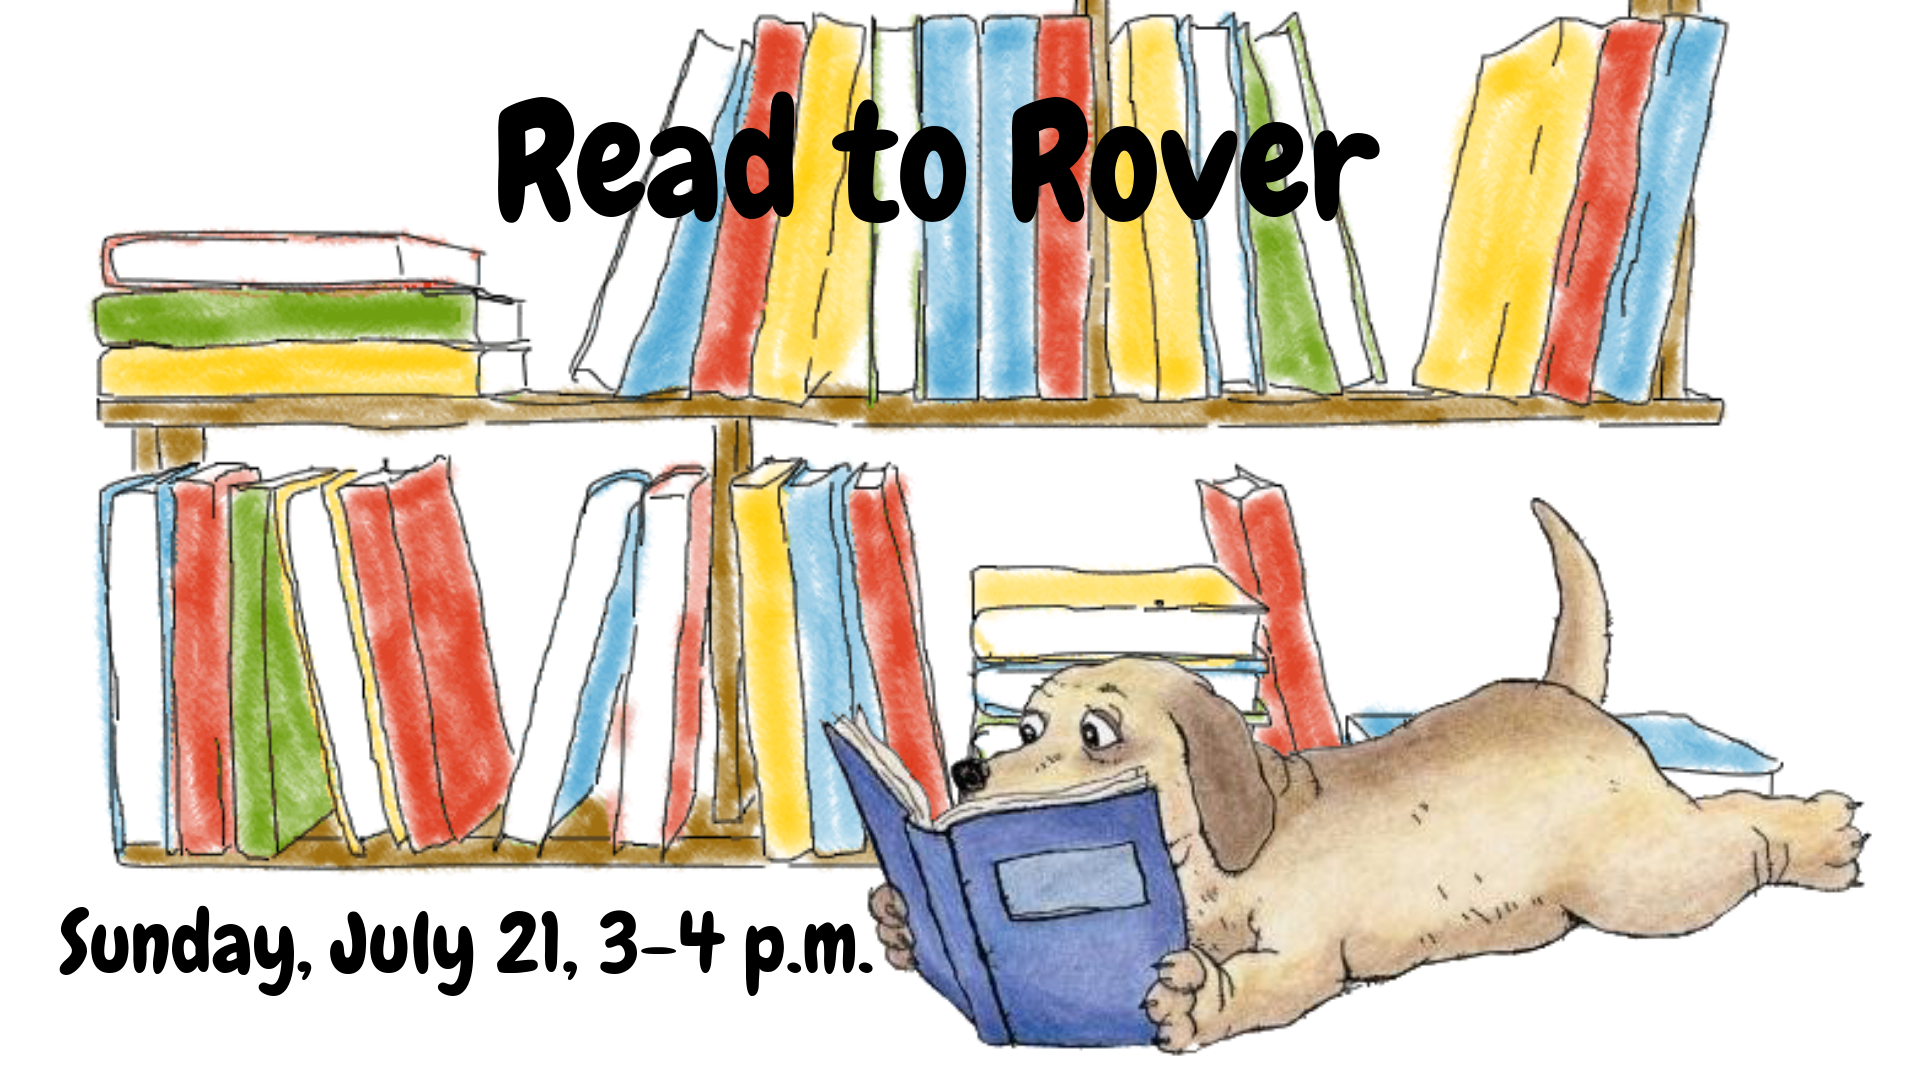 read to rover image